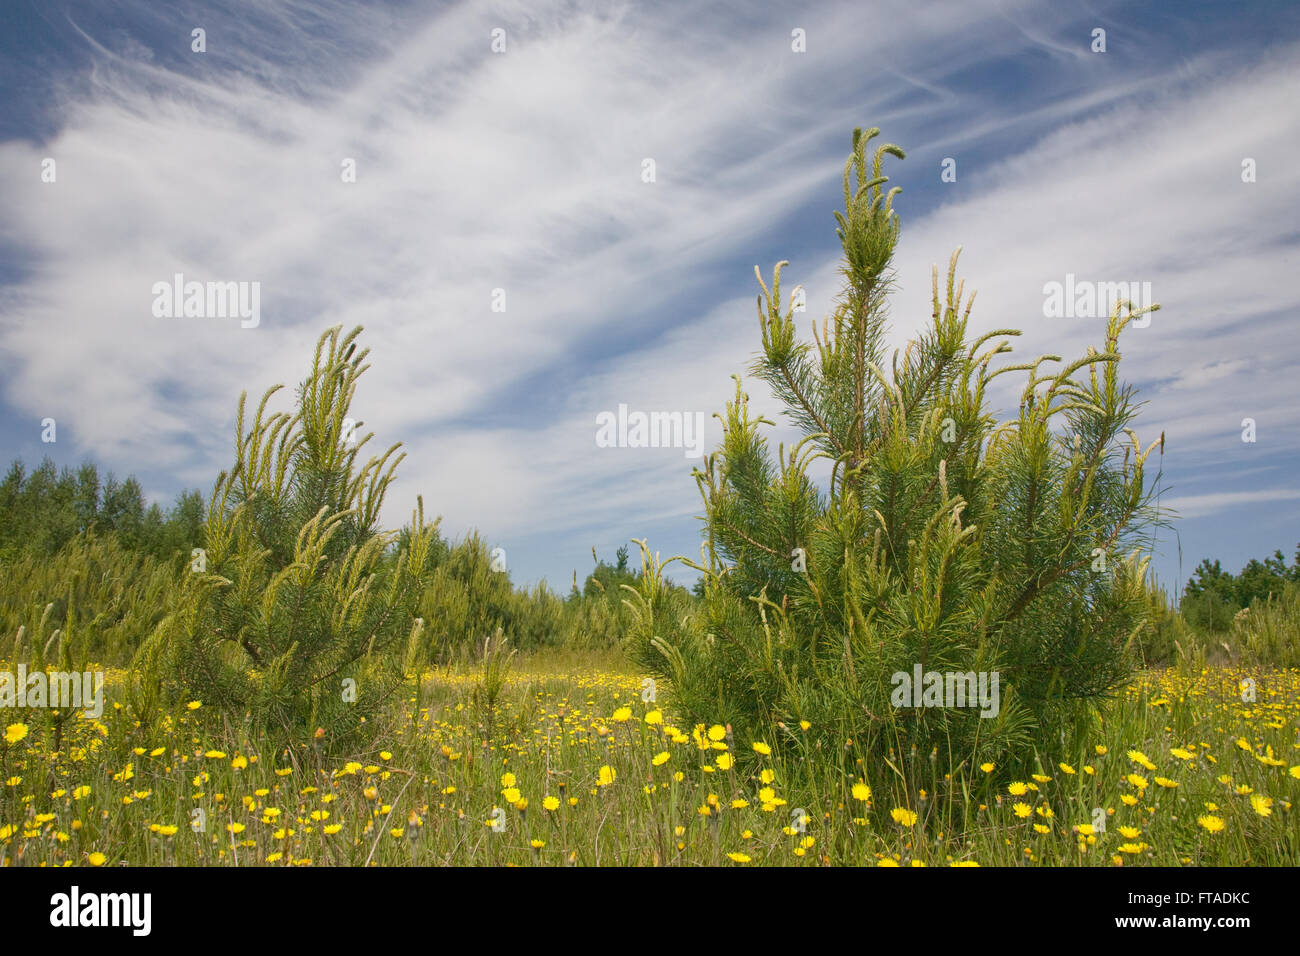 Young pine tree among grass and yellow flowers against blue cloudy sky,Podlasie Region,Poland,Europe - Stock Image